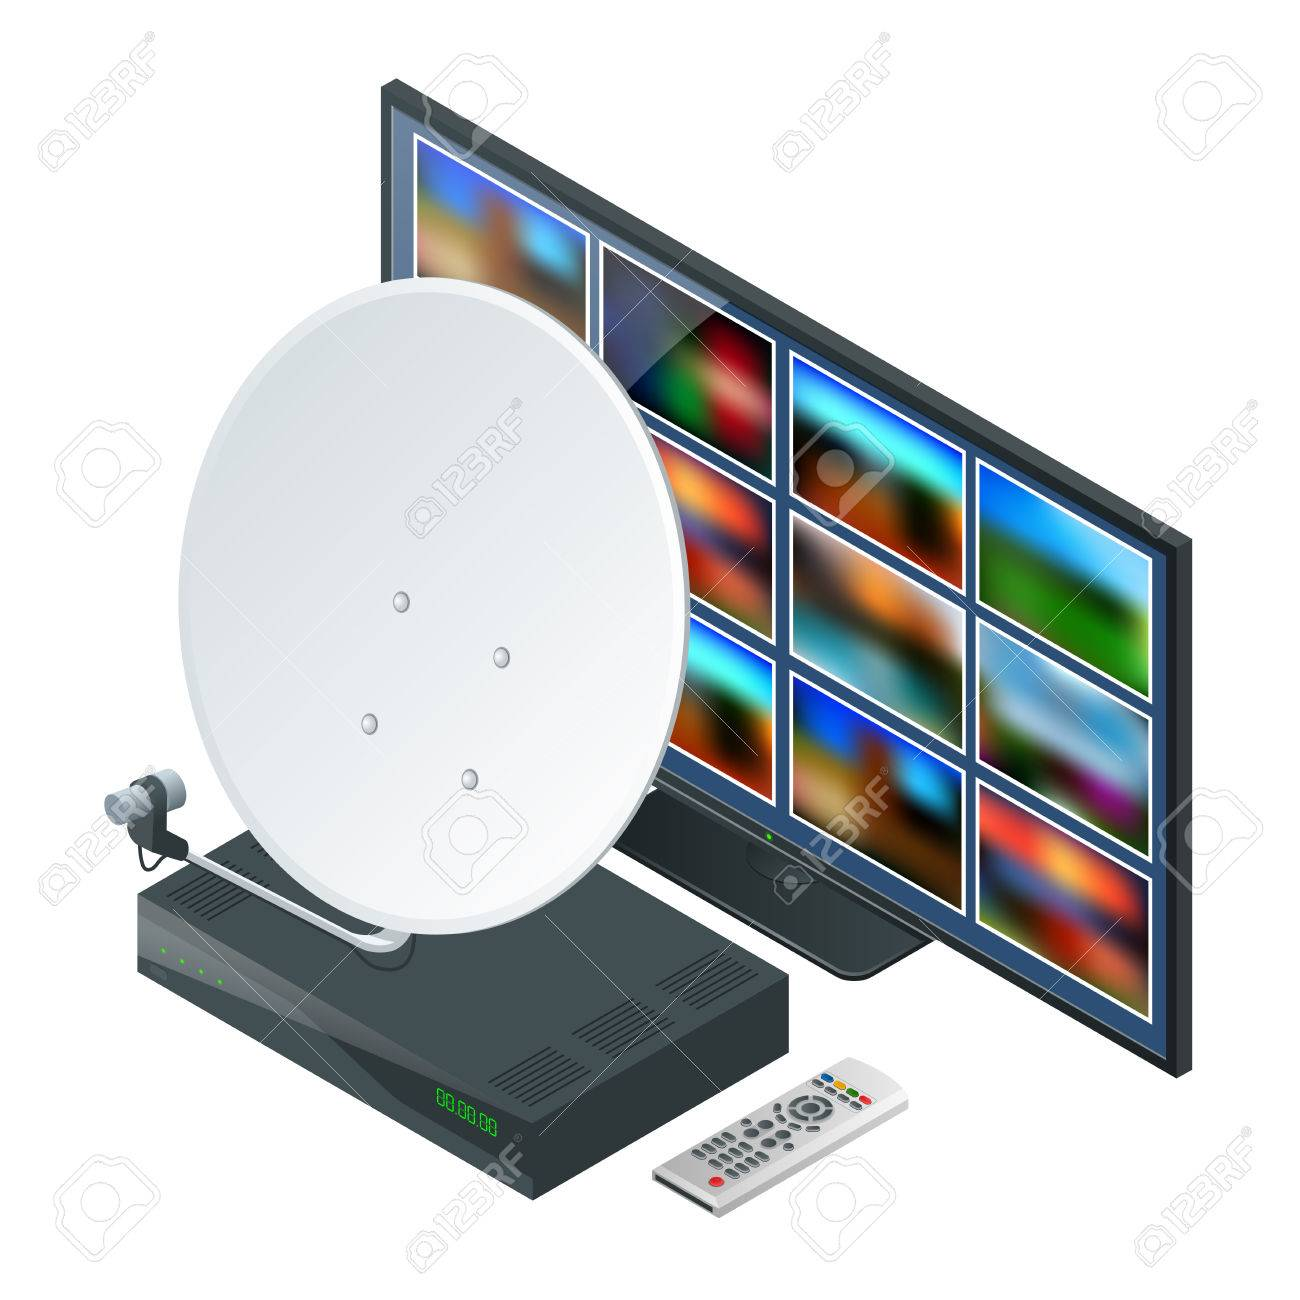 Isometric Icon An Antenna A Remote And Receiver For Satellite Royalty Free Cliparts Vectors And Stock Illustration Image 85640697